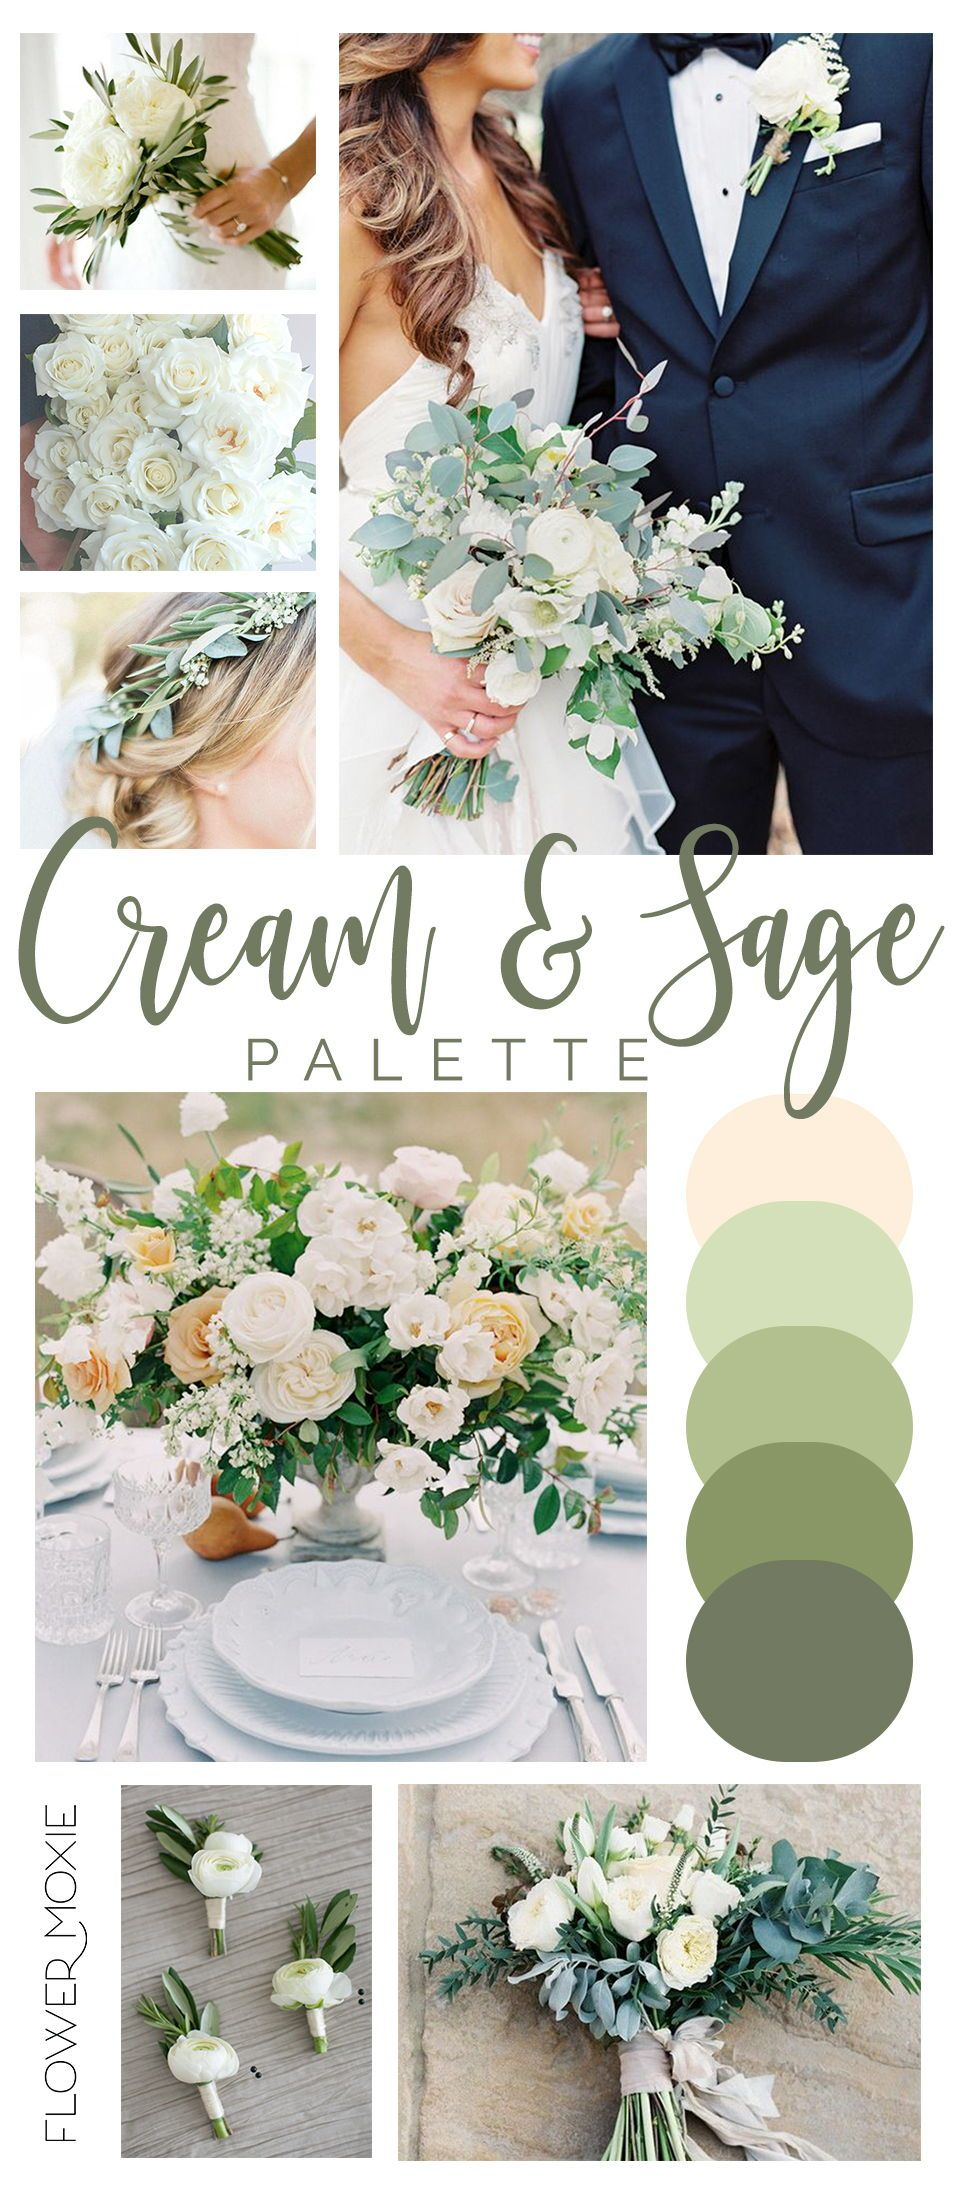 Get Inspired By Our Wedding Flower Packages Mix Match Flowers To Achieve The Look You Want Or Let U Wedding Flower Packages Sage Wedding Diy Wedding Flowers